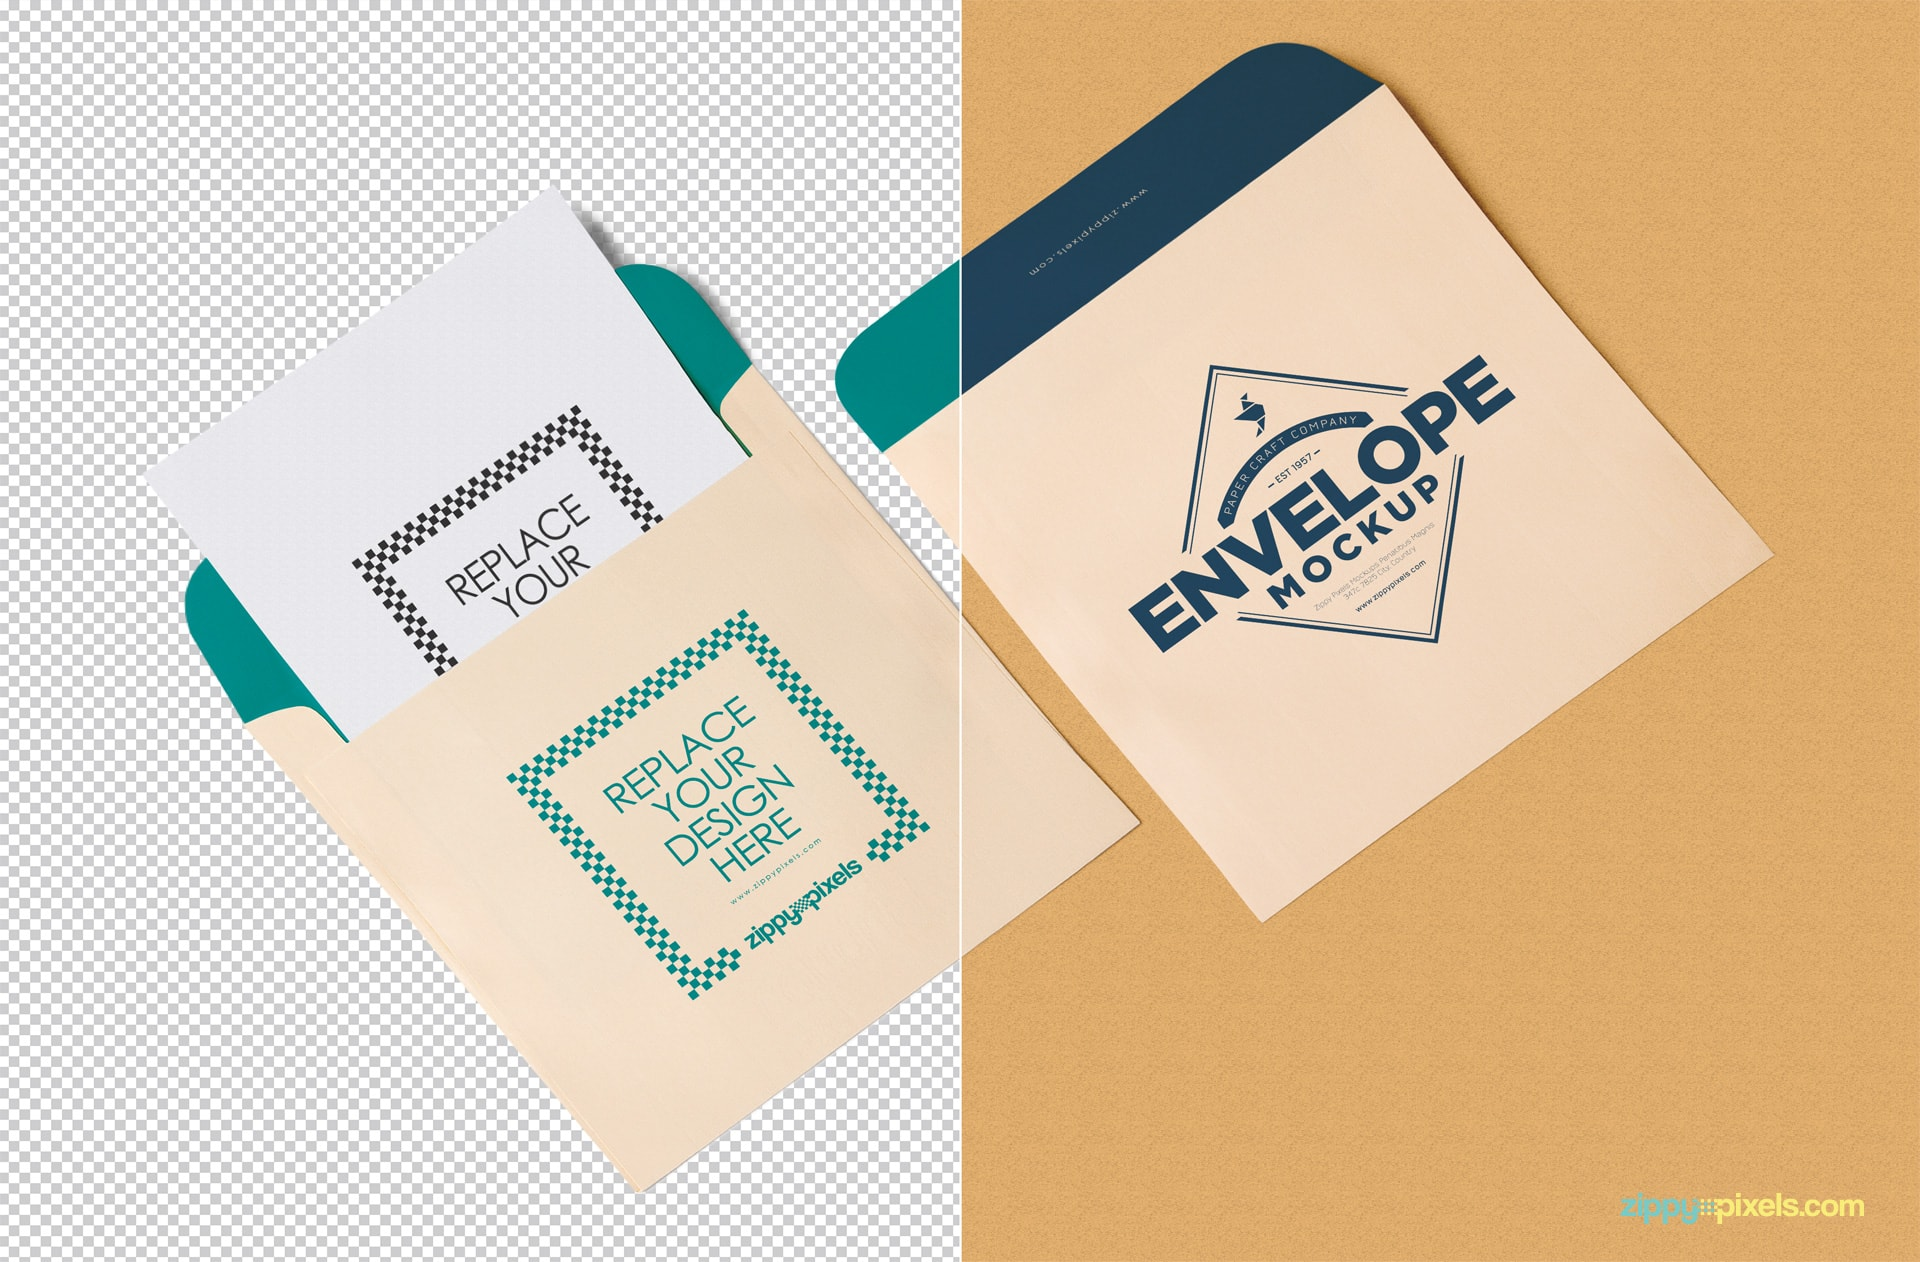 Customizable features of the free envelope and letterhead mockup